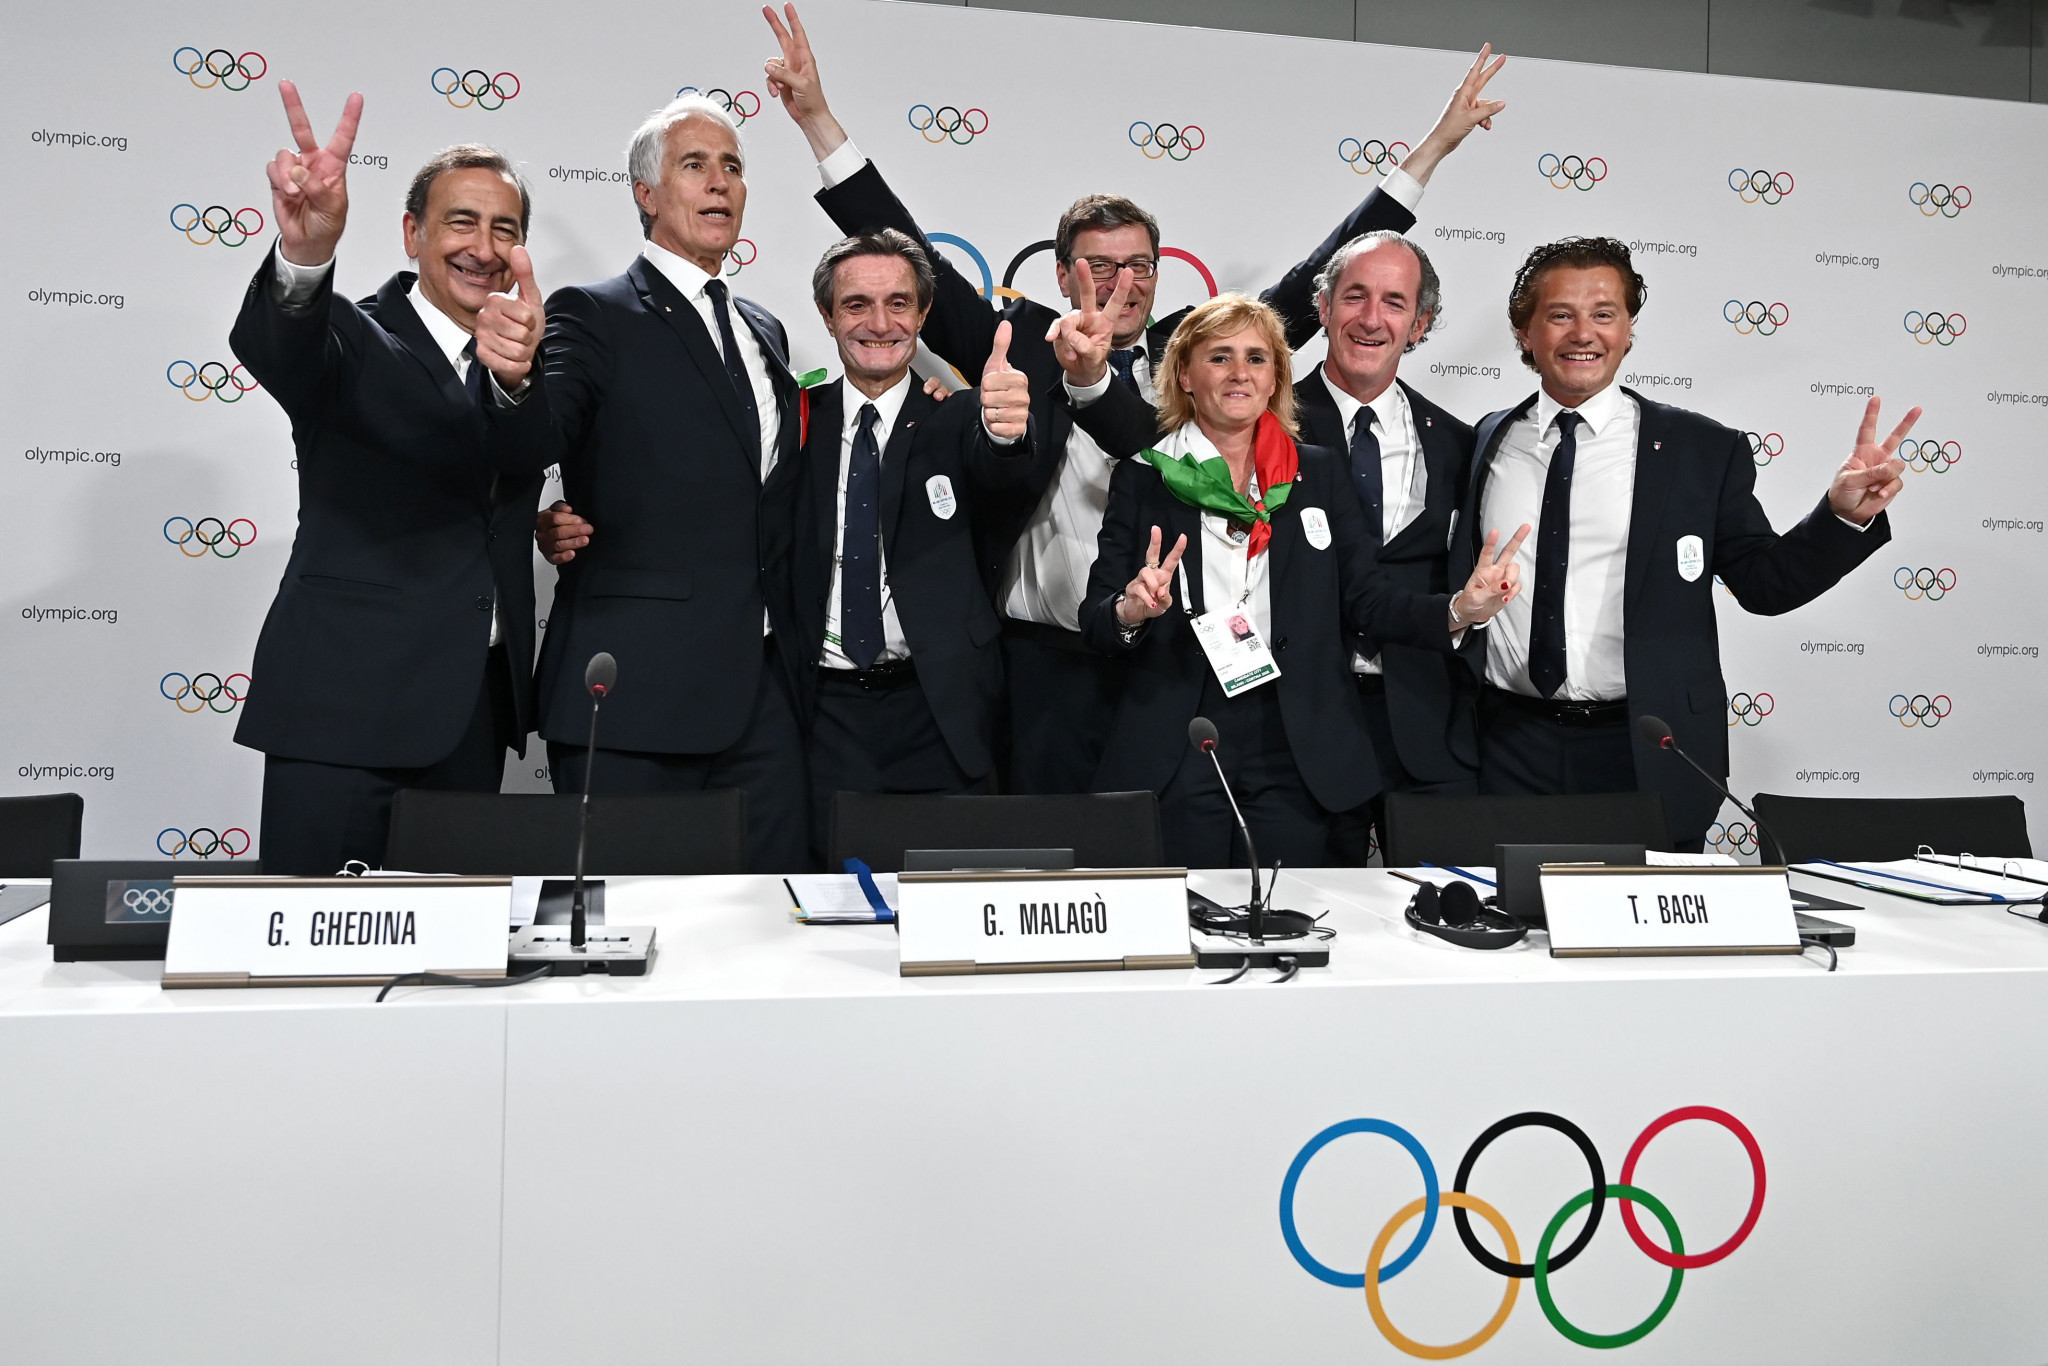 Milan-Cortina 2026 organisers say preparations going well following meetings with IOC and IPC